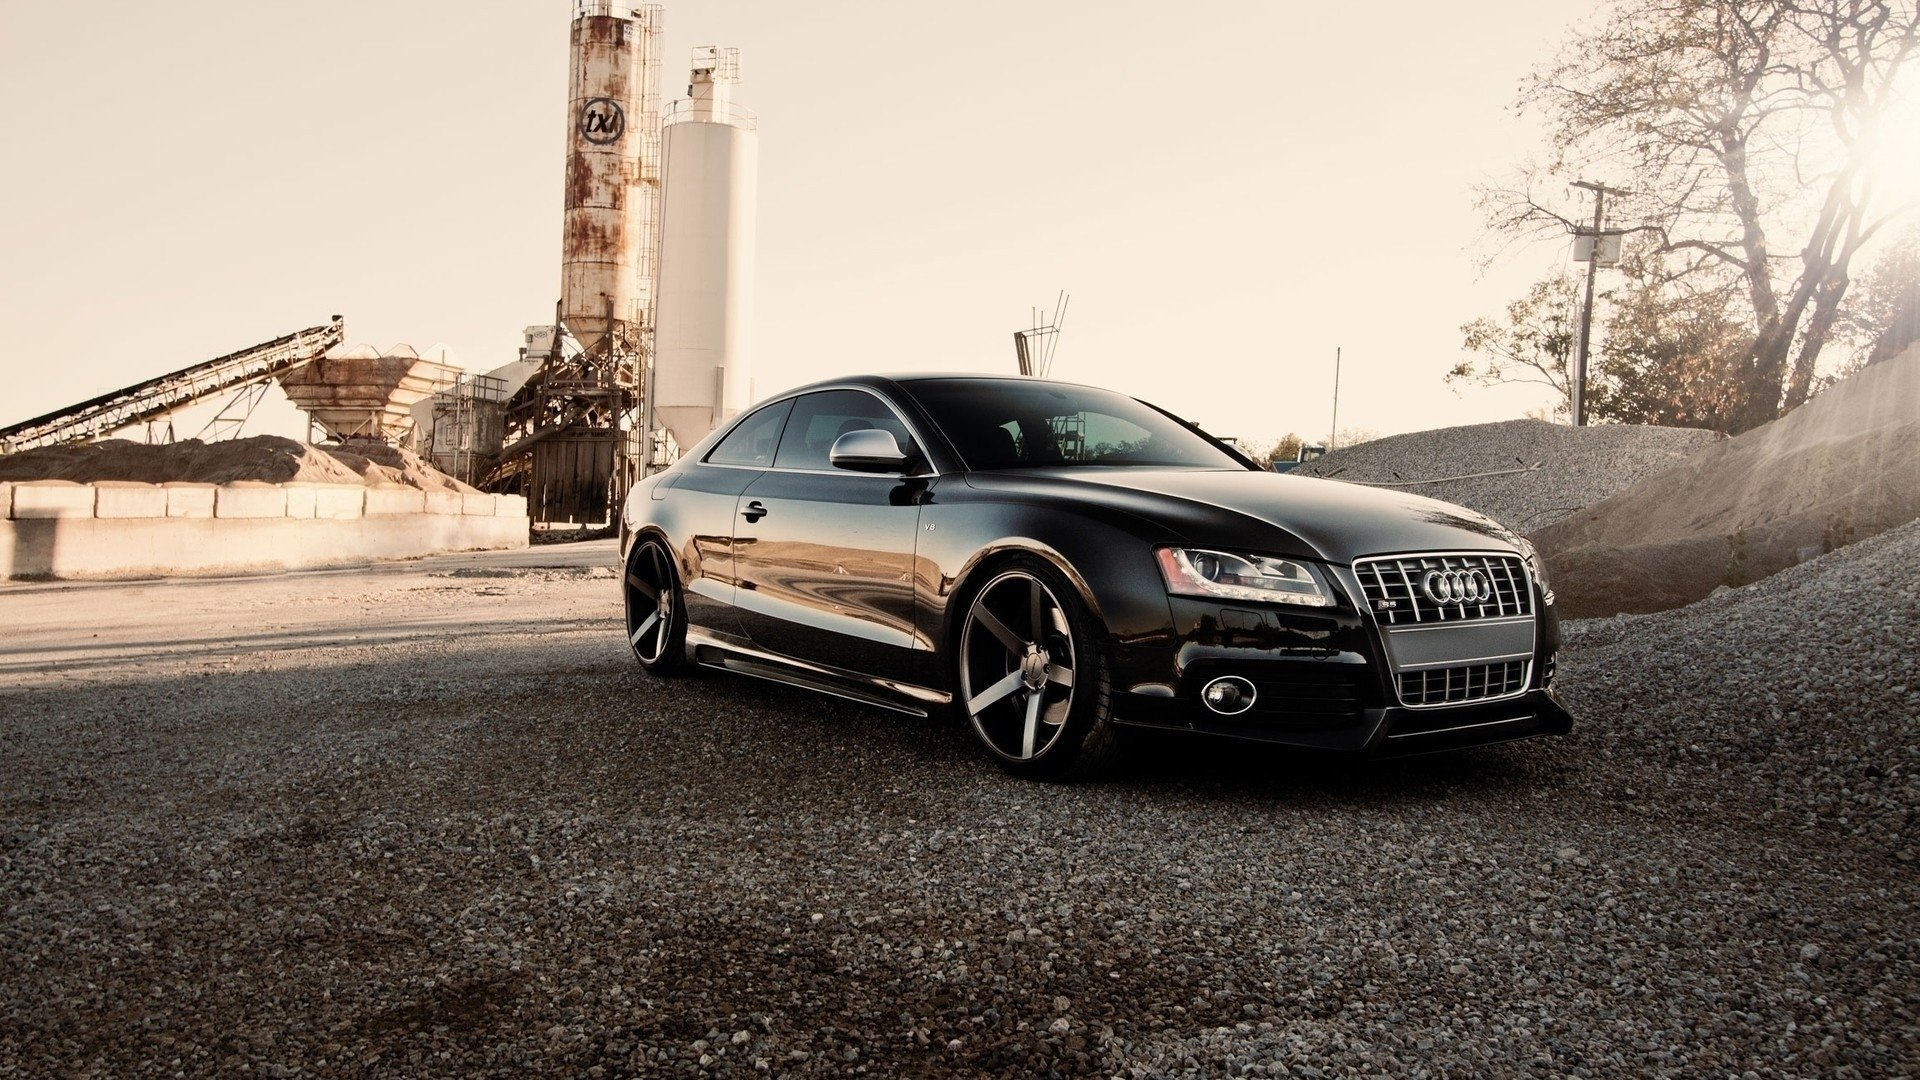 594 audi hd wallpapers | background images - wallpaper abyss